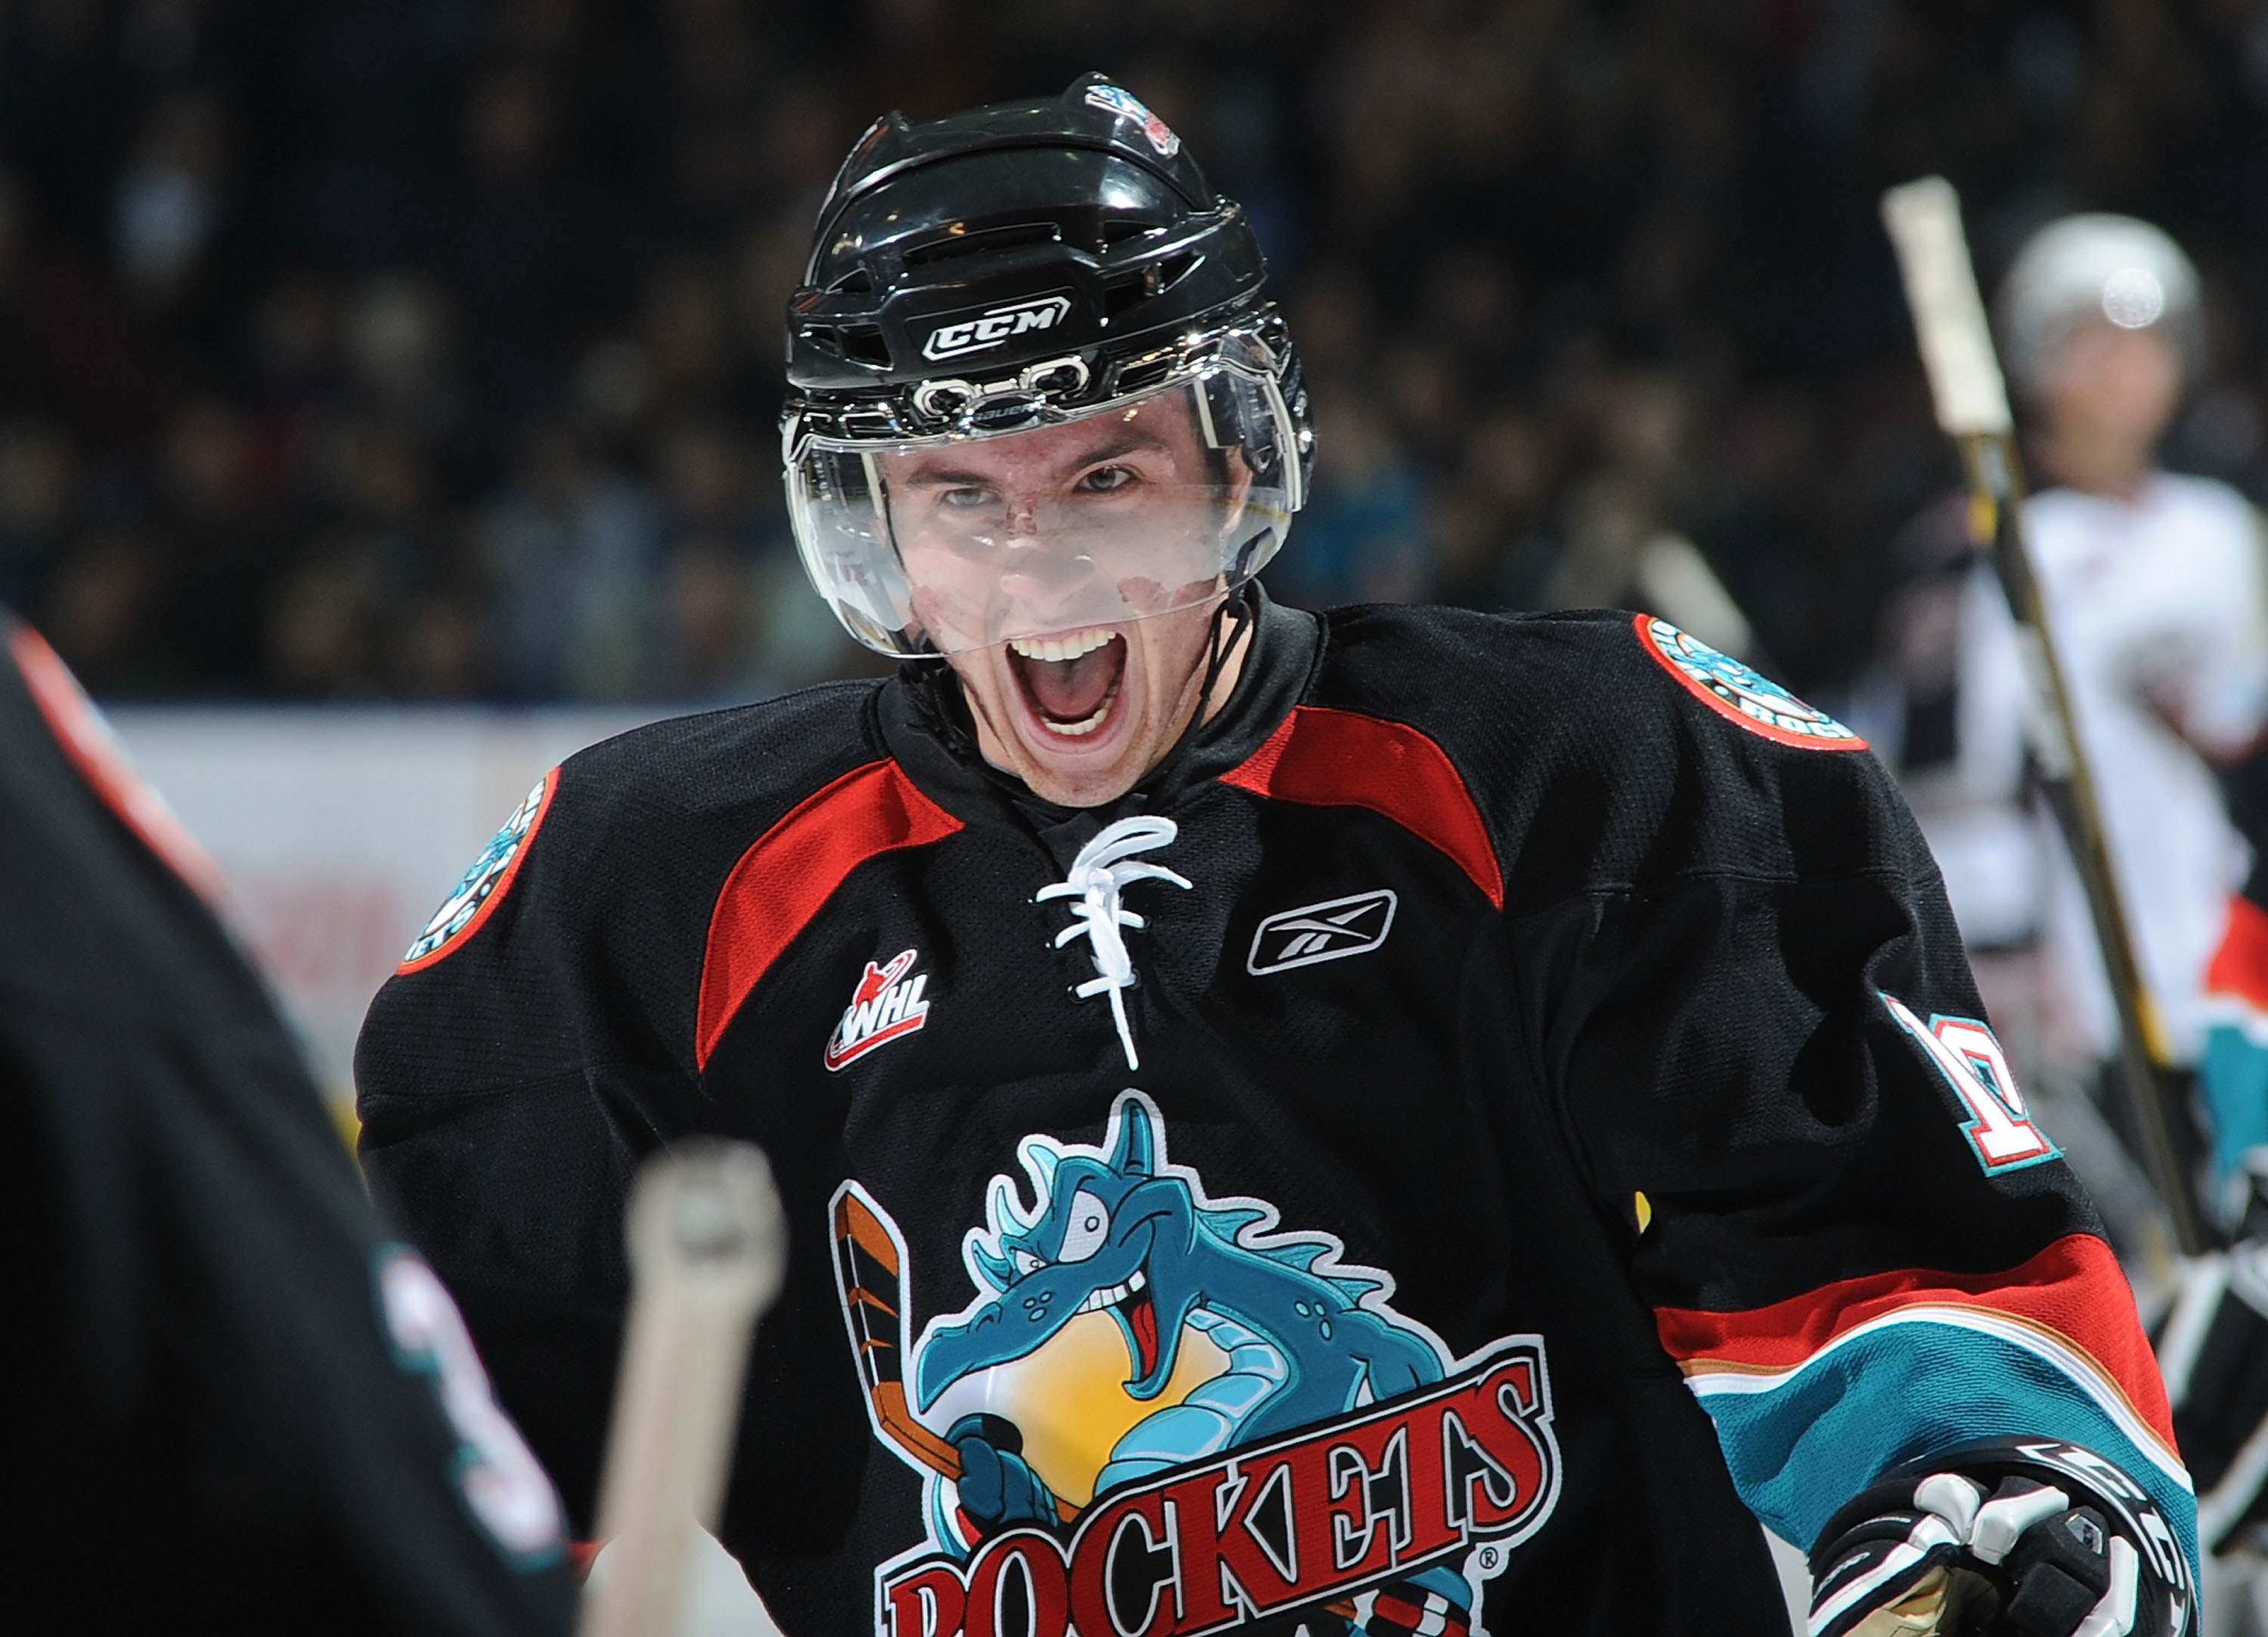 NHL Top Prospects from the WHL 2011